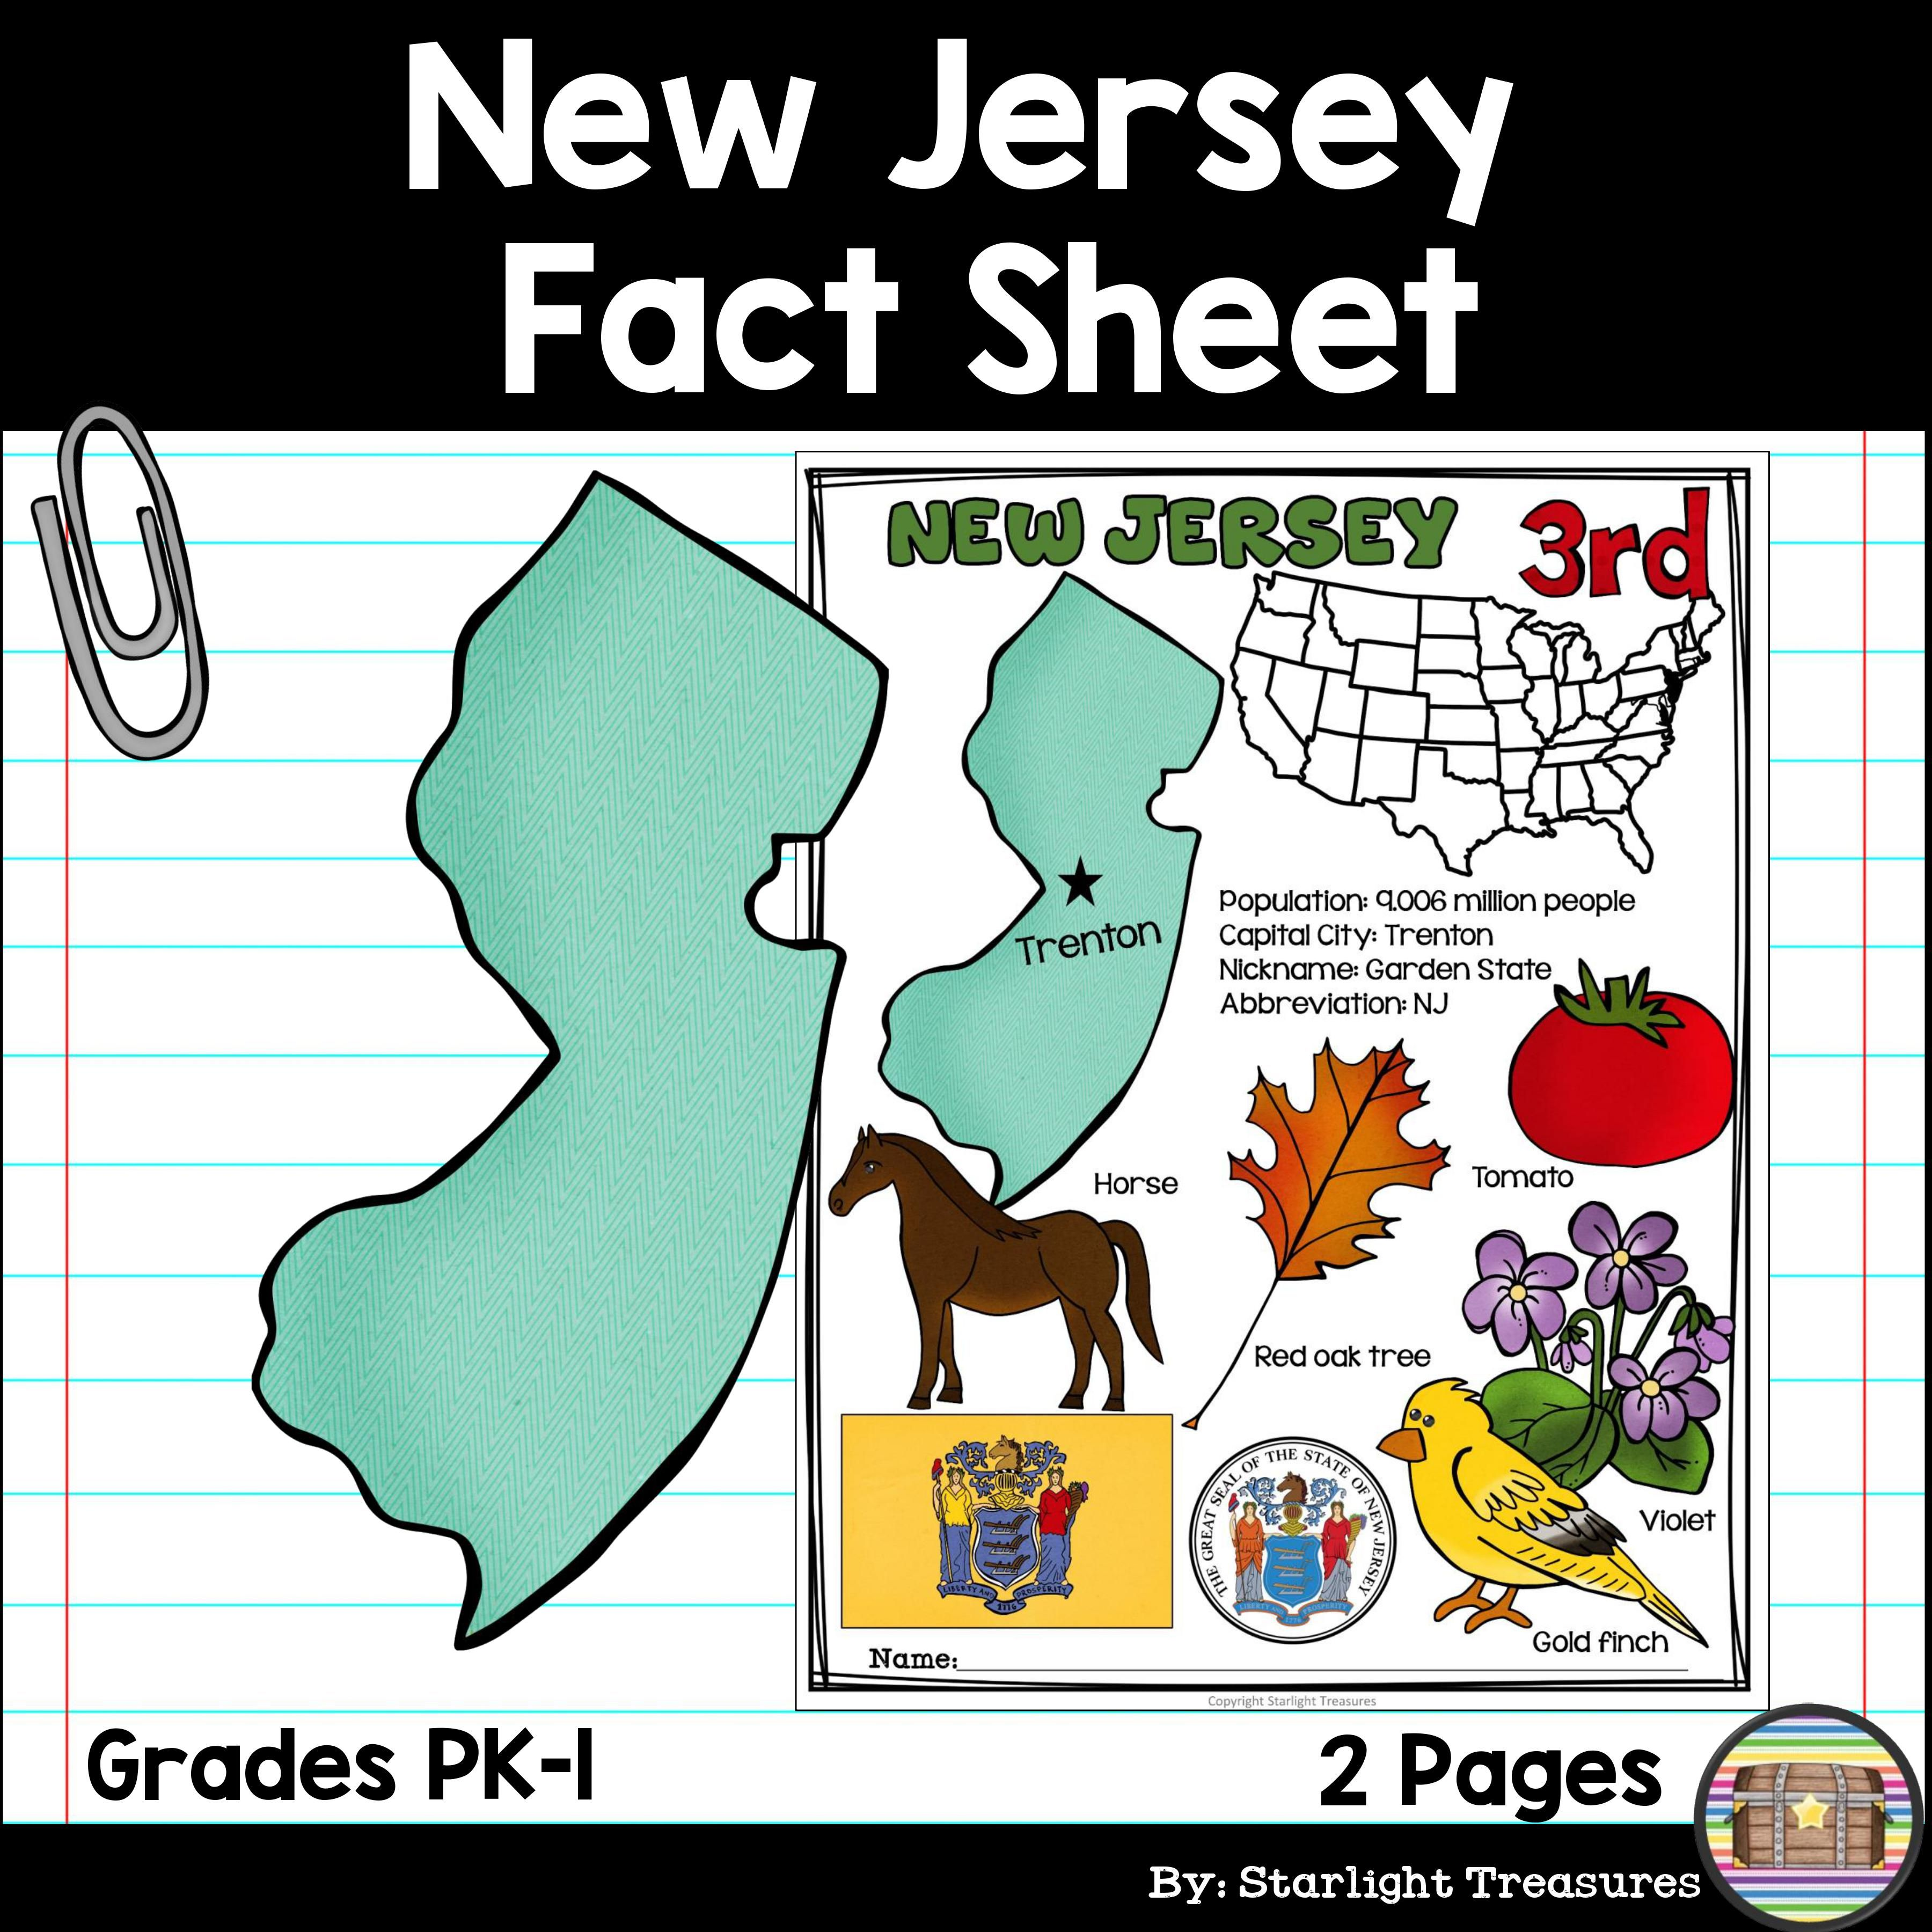 New Jersey Fact Sheet New jersey, Facts, Nevada facts